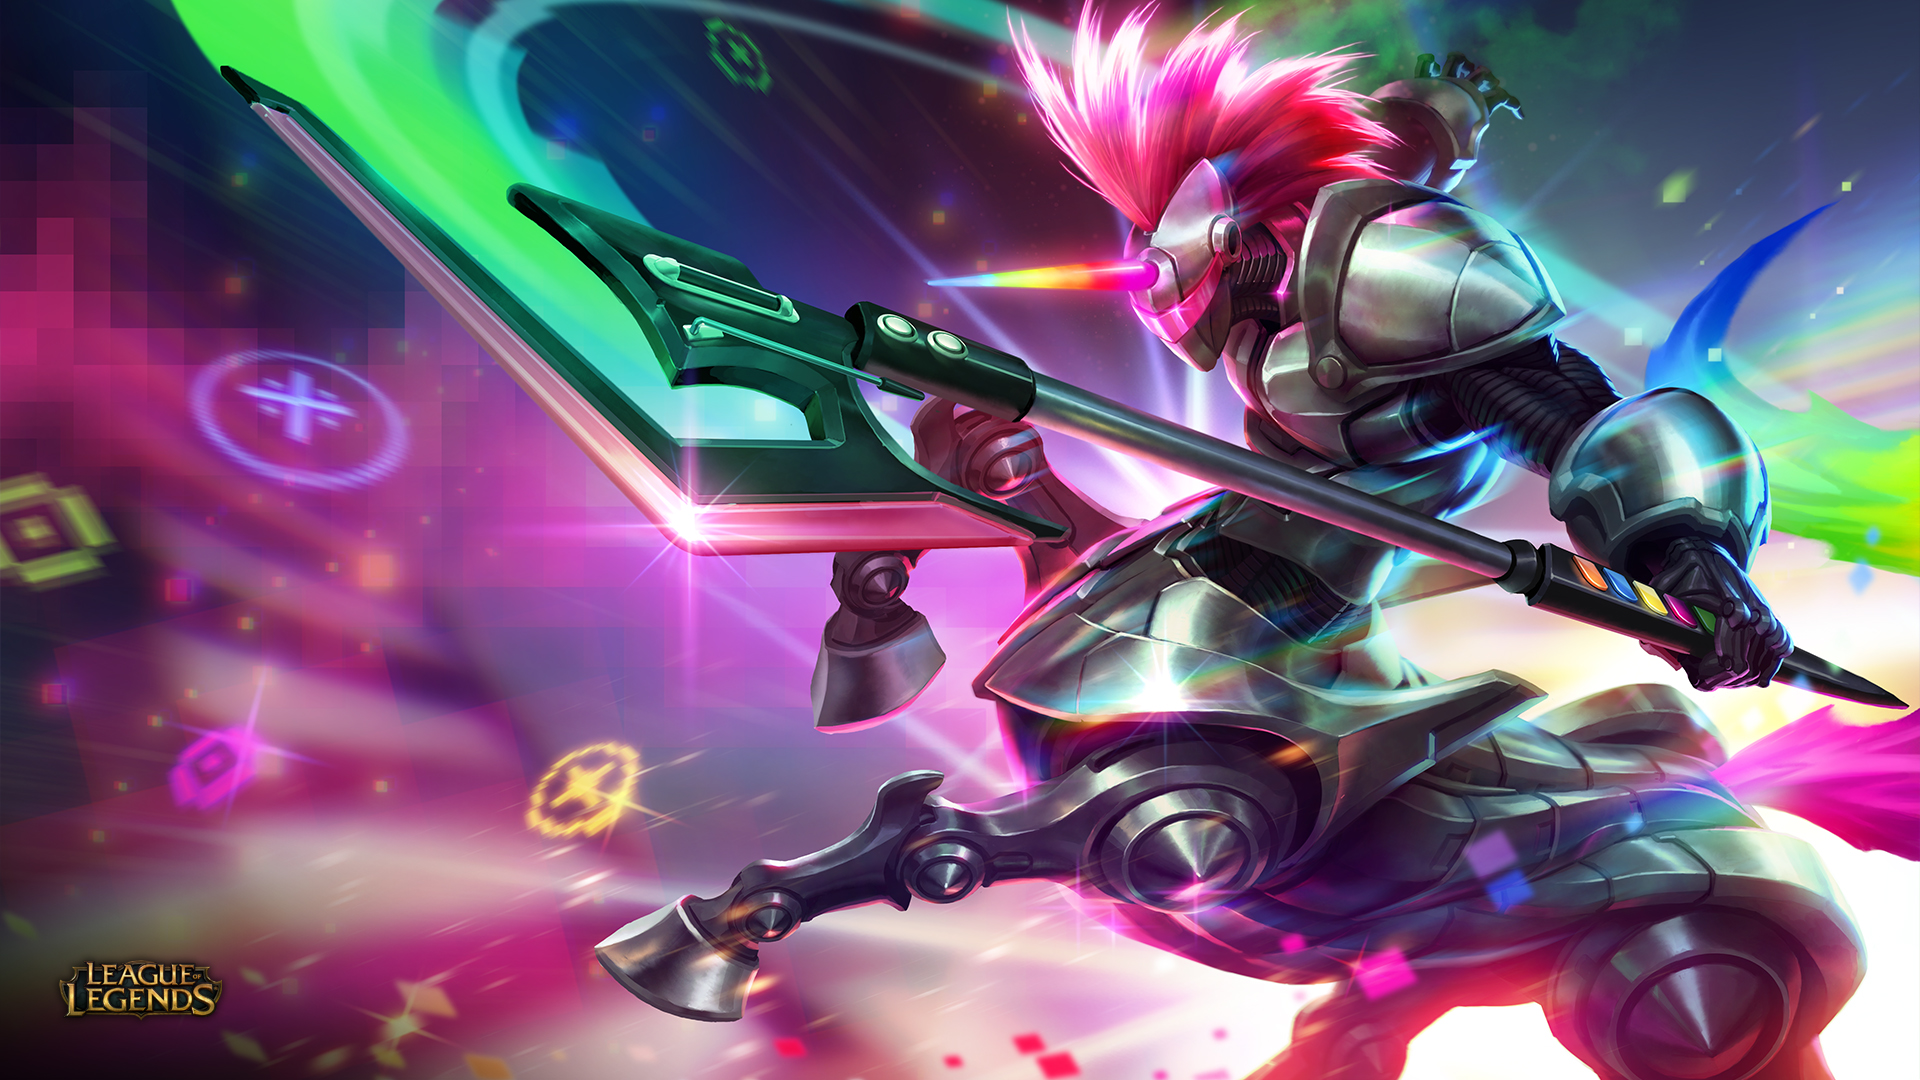 Arcade miss fortune league of legends - 1 9